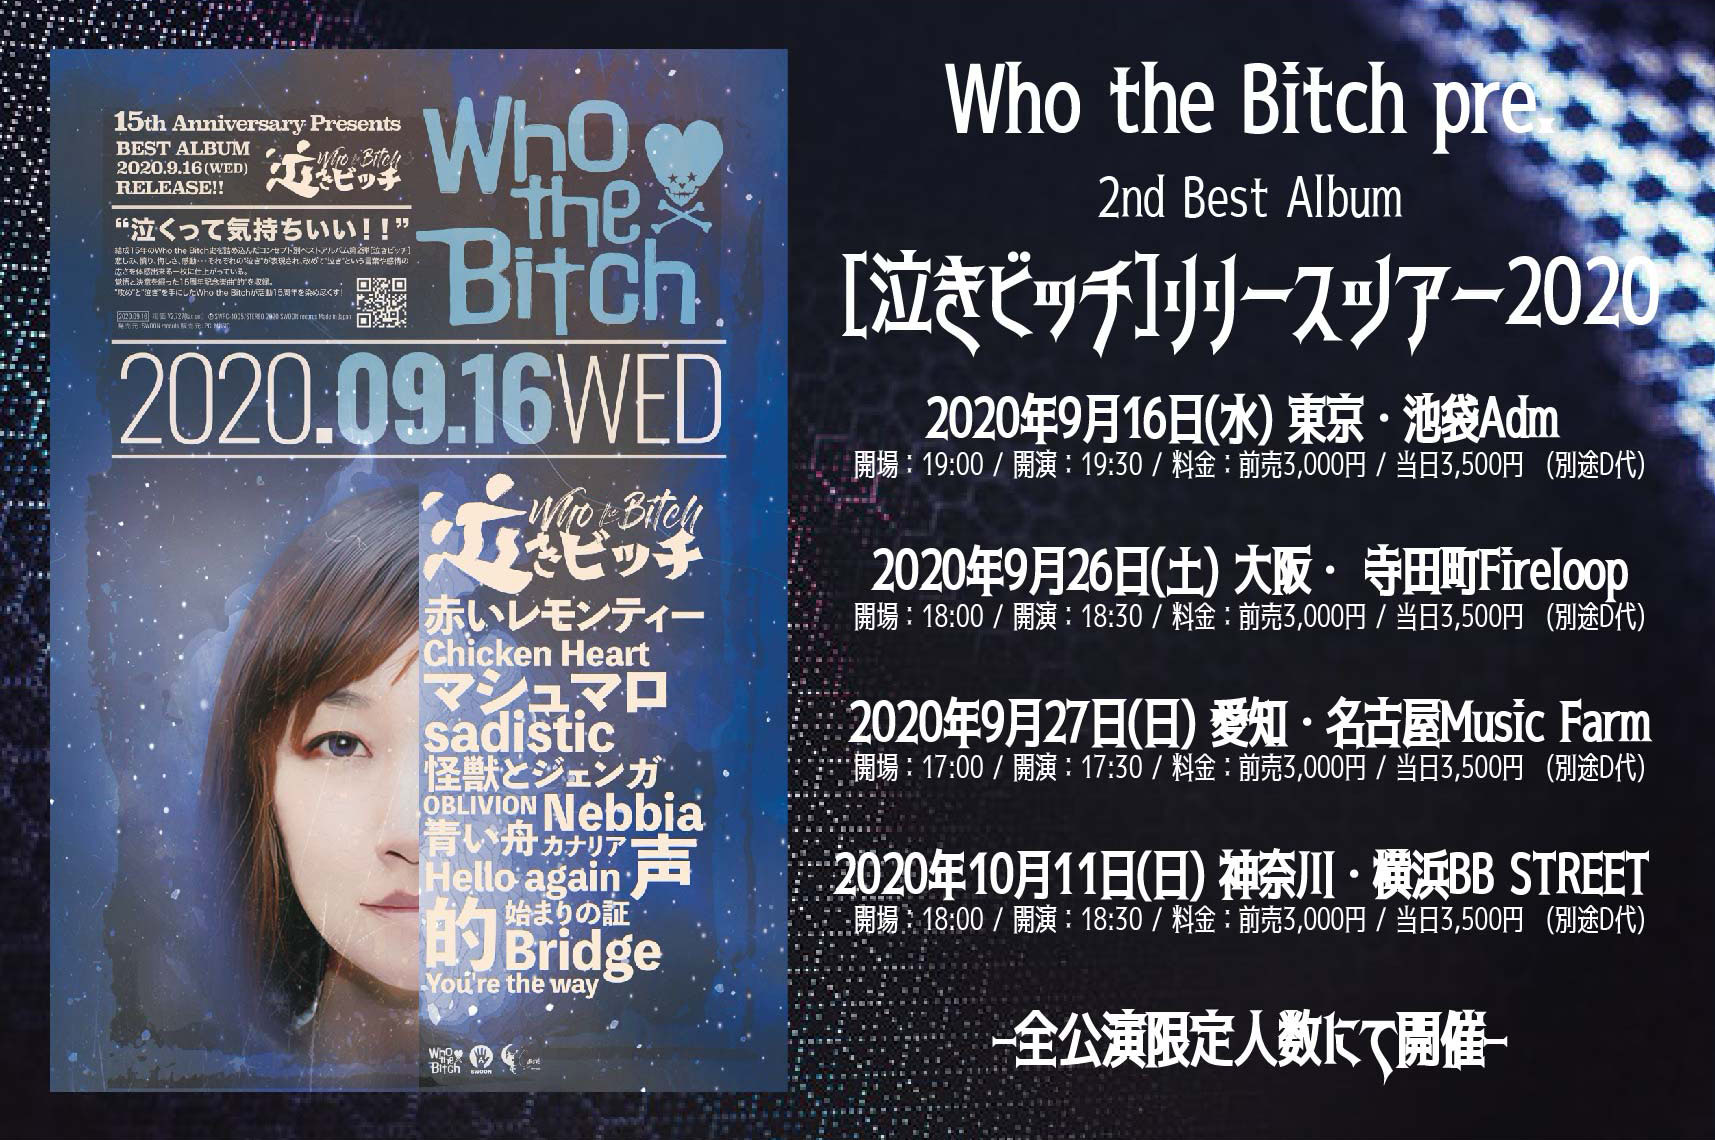 Who the Bitch pre.【泣きビッチ】リリースツアー2020